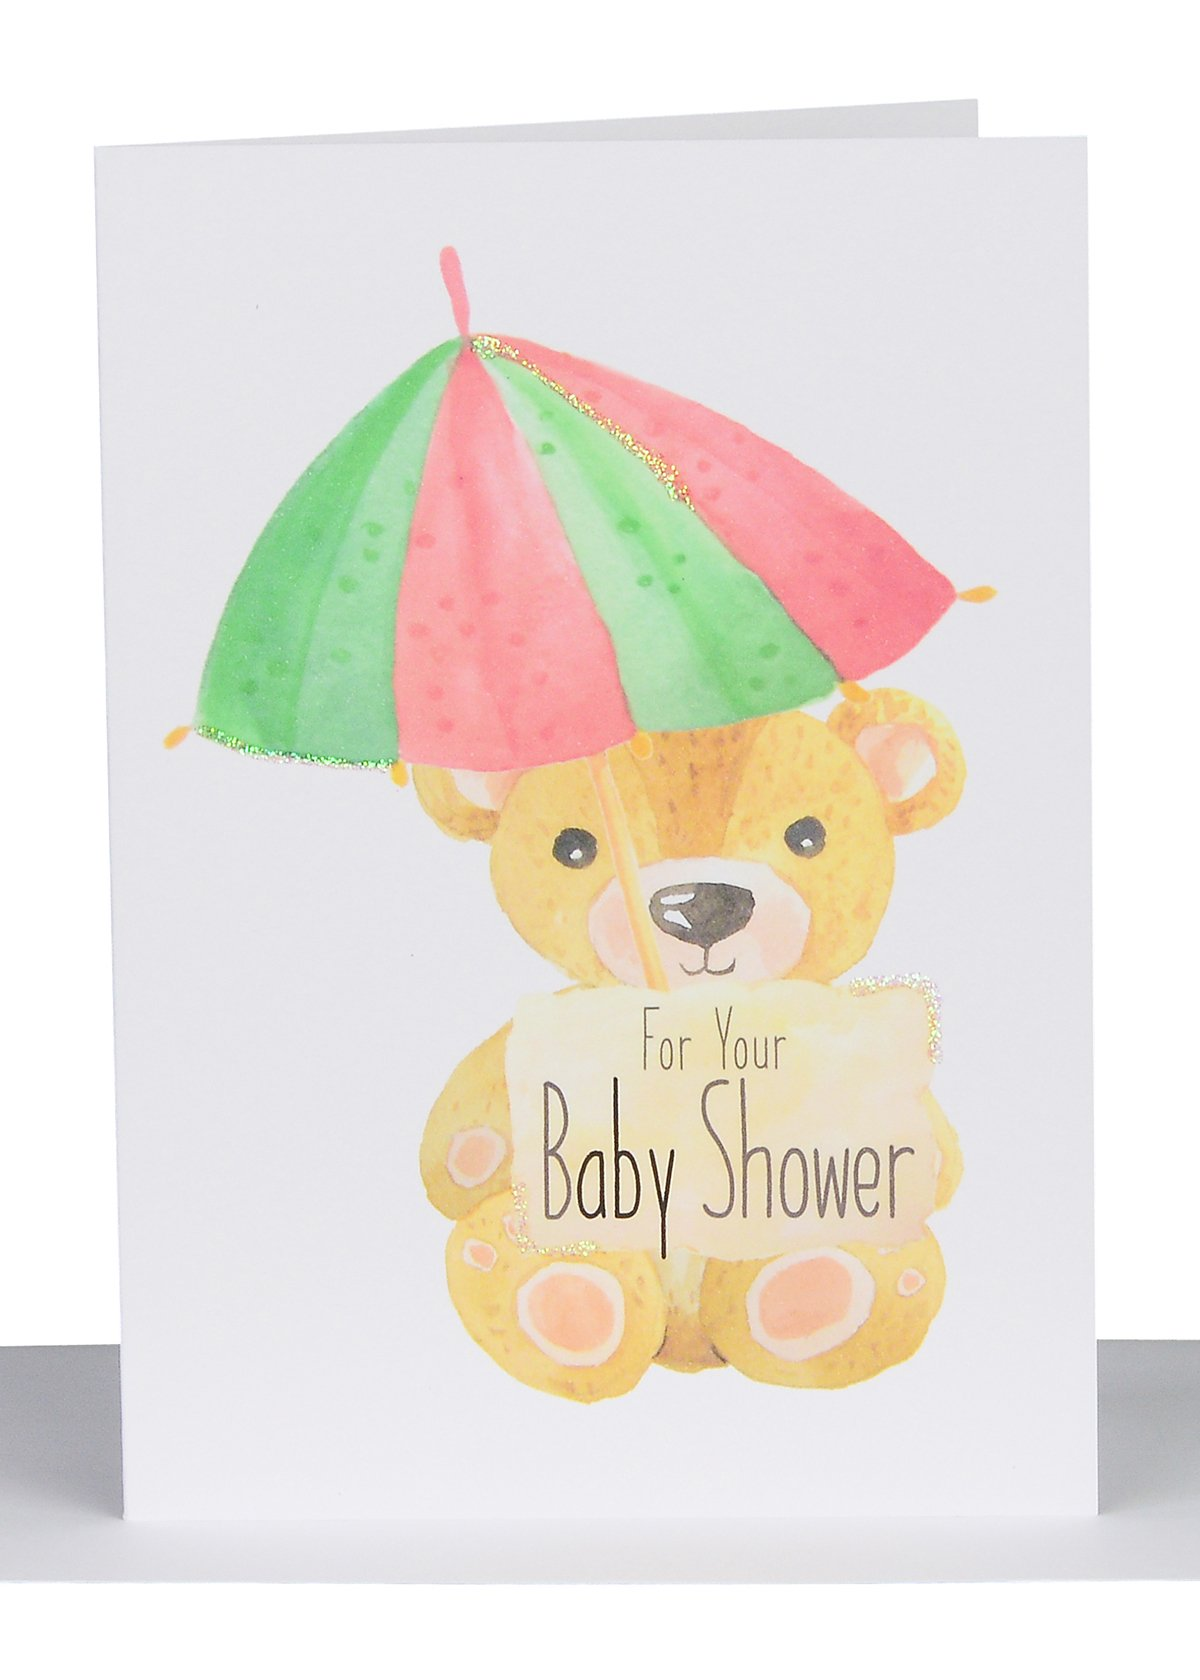 Australian made greeting cards wholesale baby shower card lils wholesale baby shower card m4hsunfo